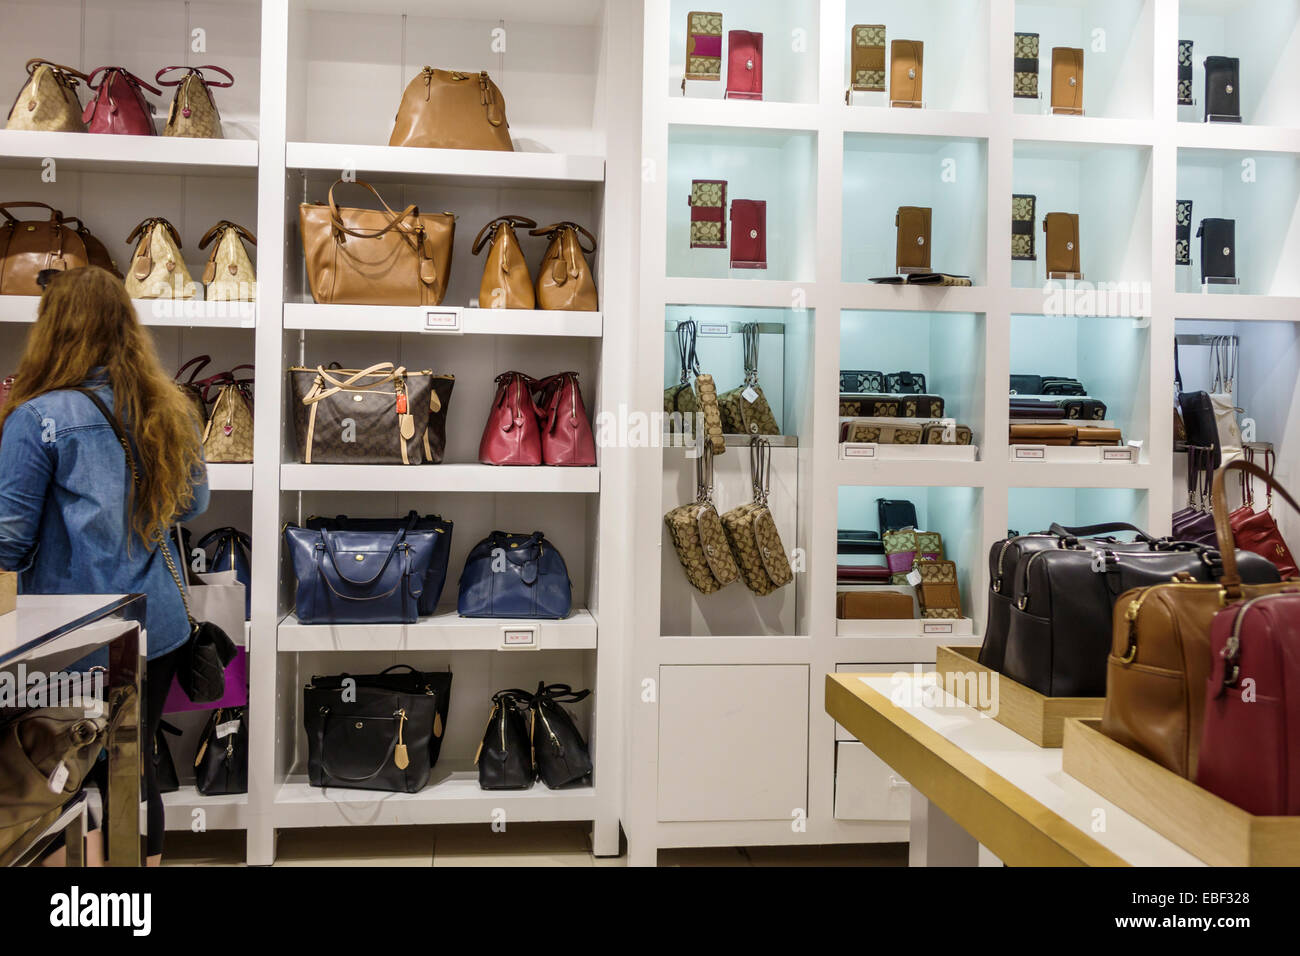 Delicieux Orlando Florida Premium Outlets Shopping Coach Factory Leather Goods  Display Sale Womenu0027s Handbags Inside